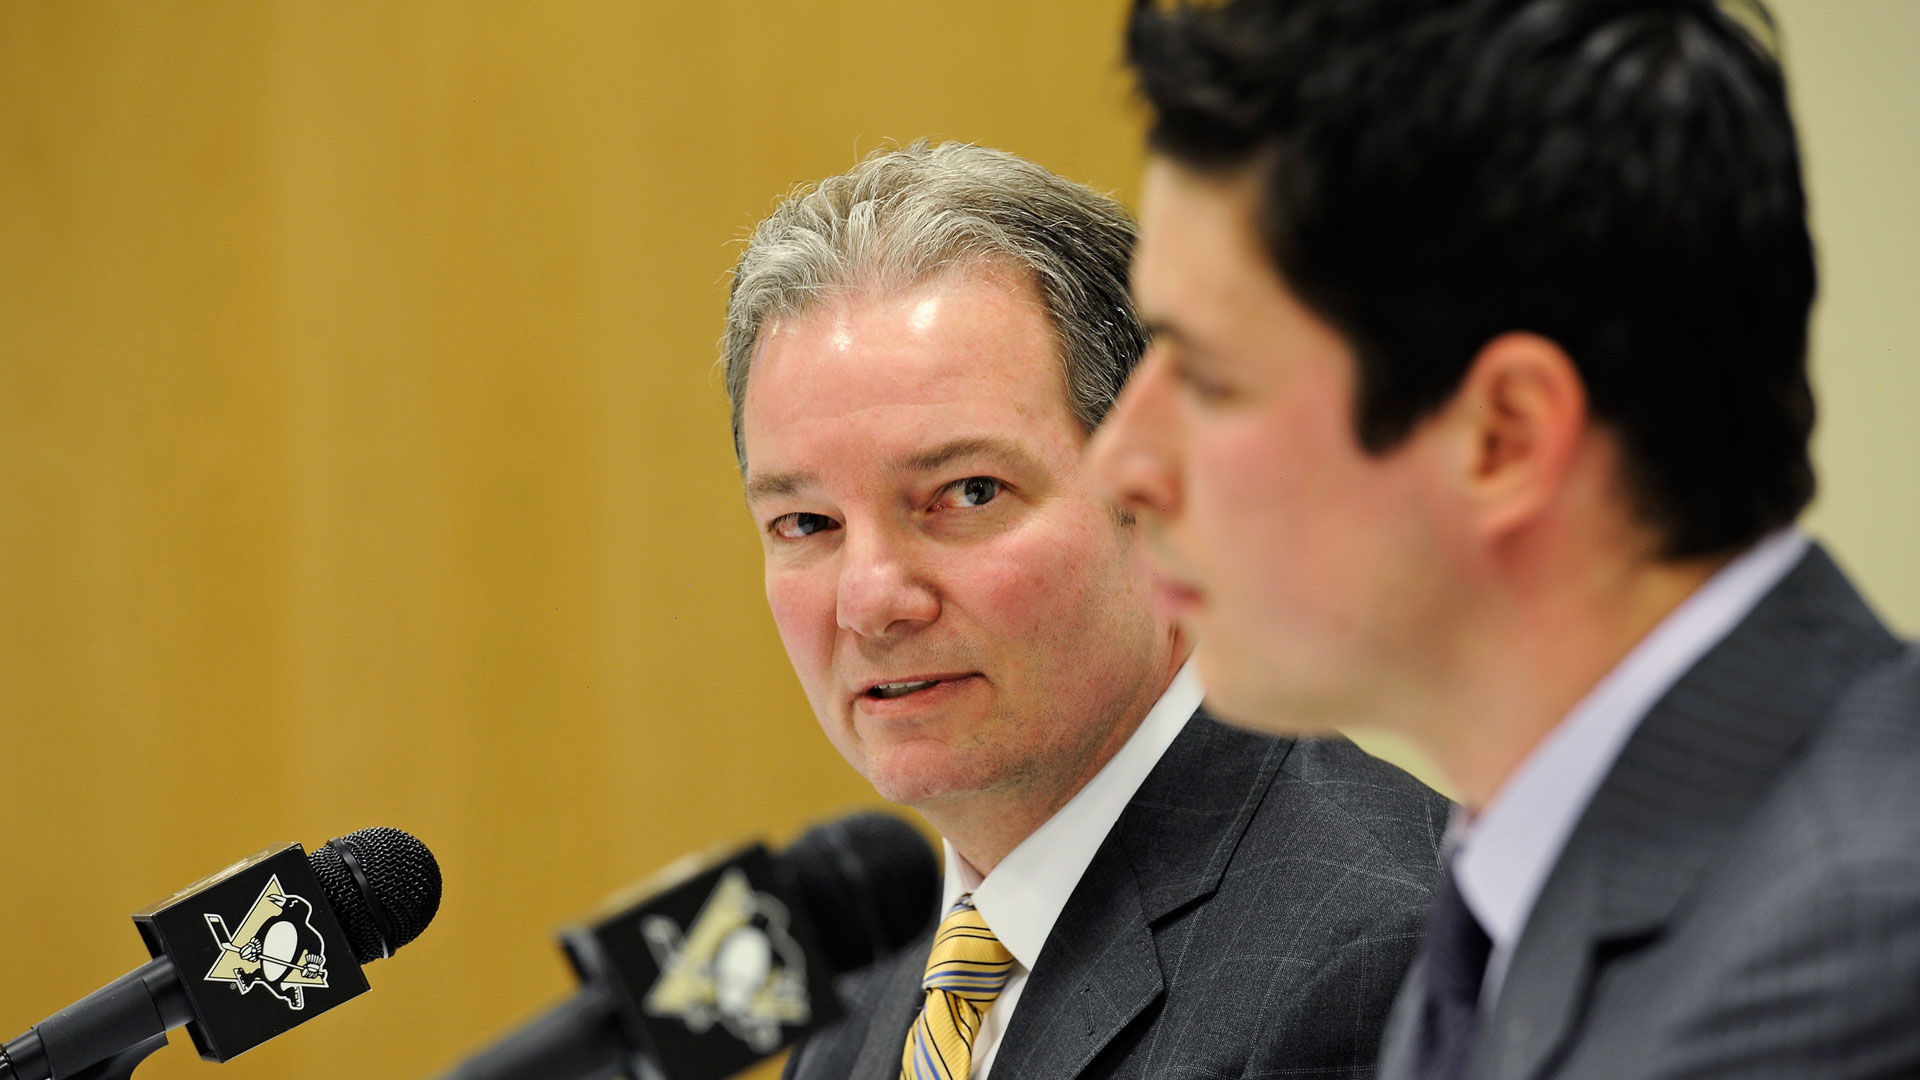 Devils need change; can Ray Shero manage?